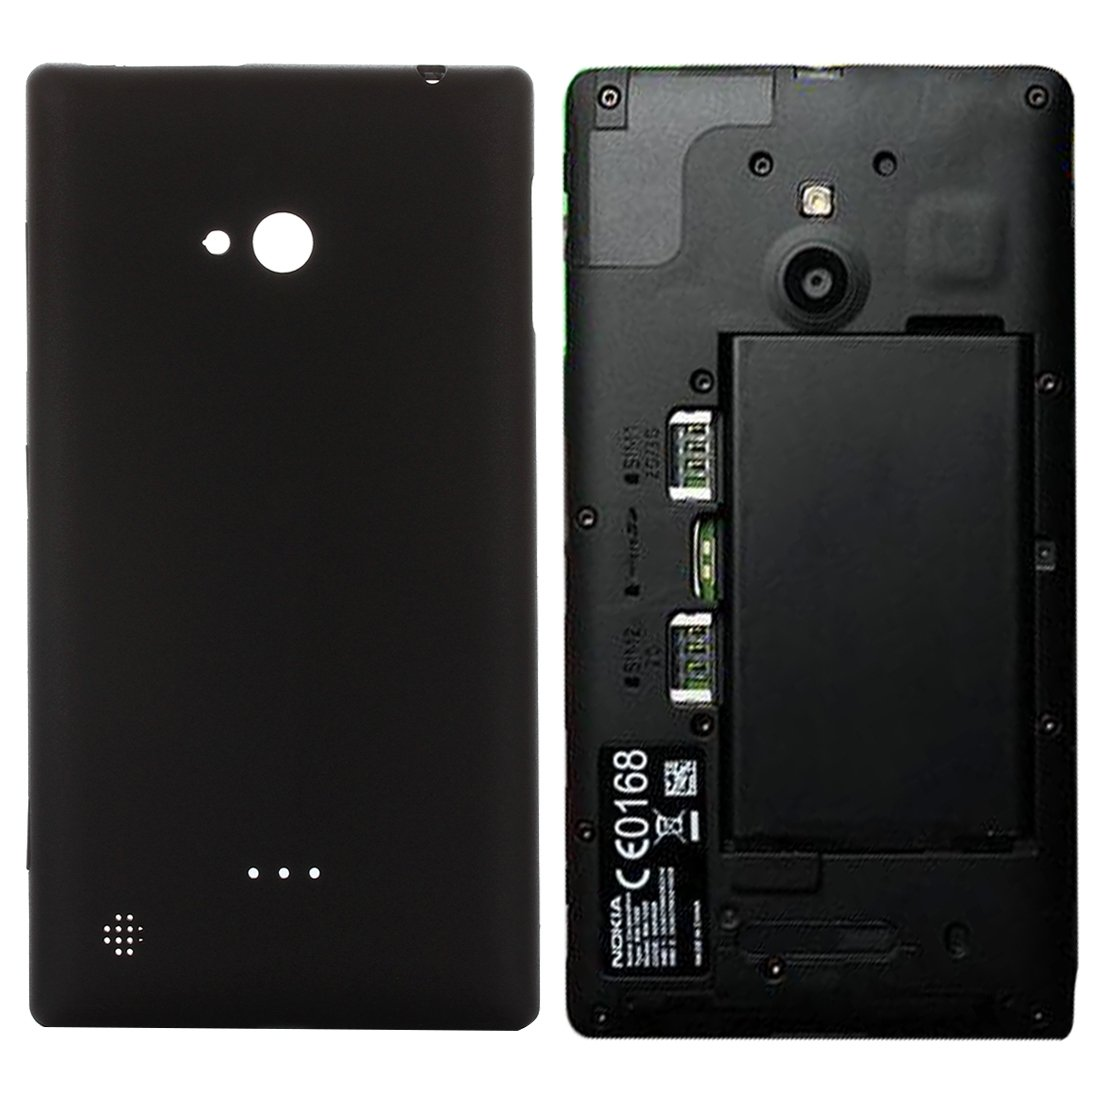 JUNXI Phone Back Cover for Nokia Lumia 720 (Black) Easy Install Tray (Color : Black) by JUNXI